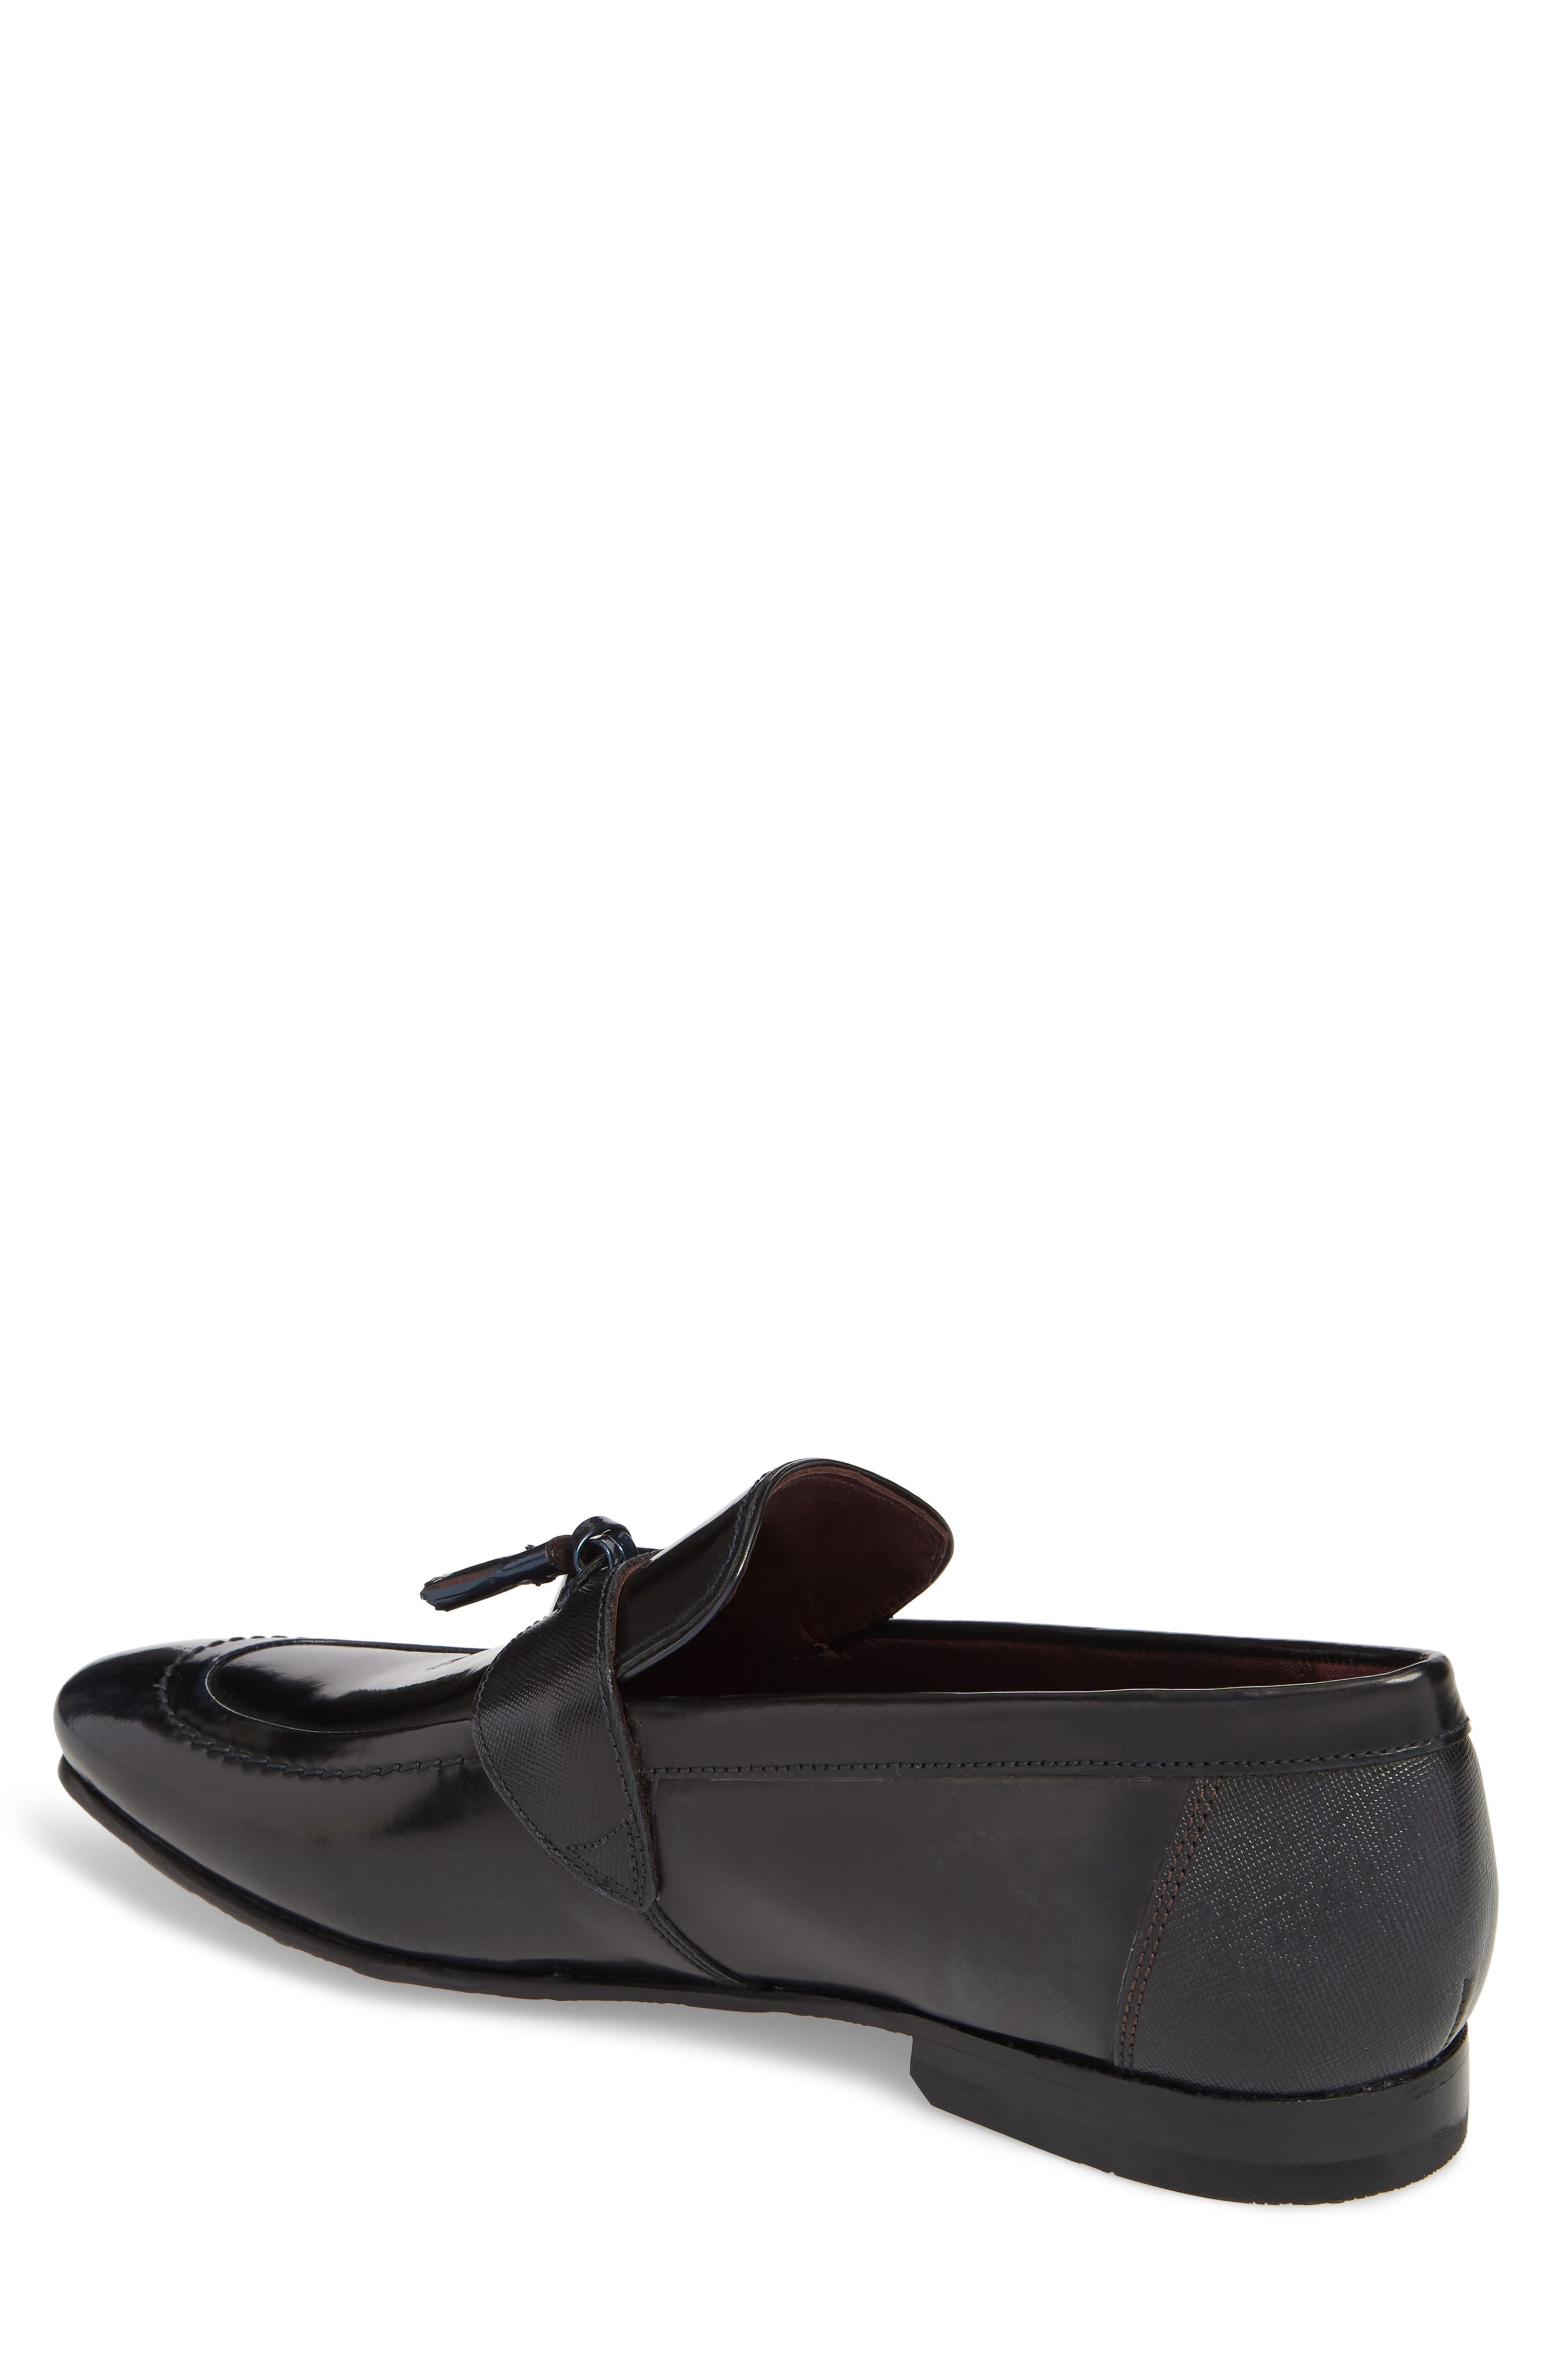 Grafit Tassel Loafer,                             Alternate thumbnail 2, color,                             416